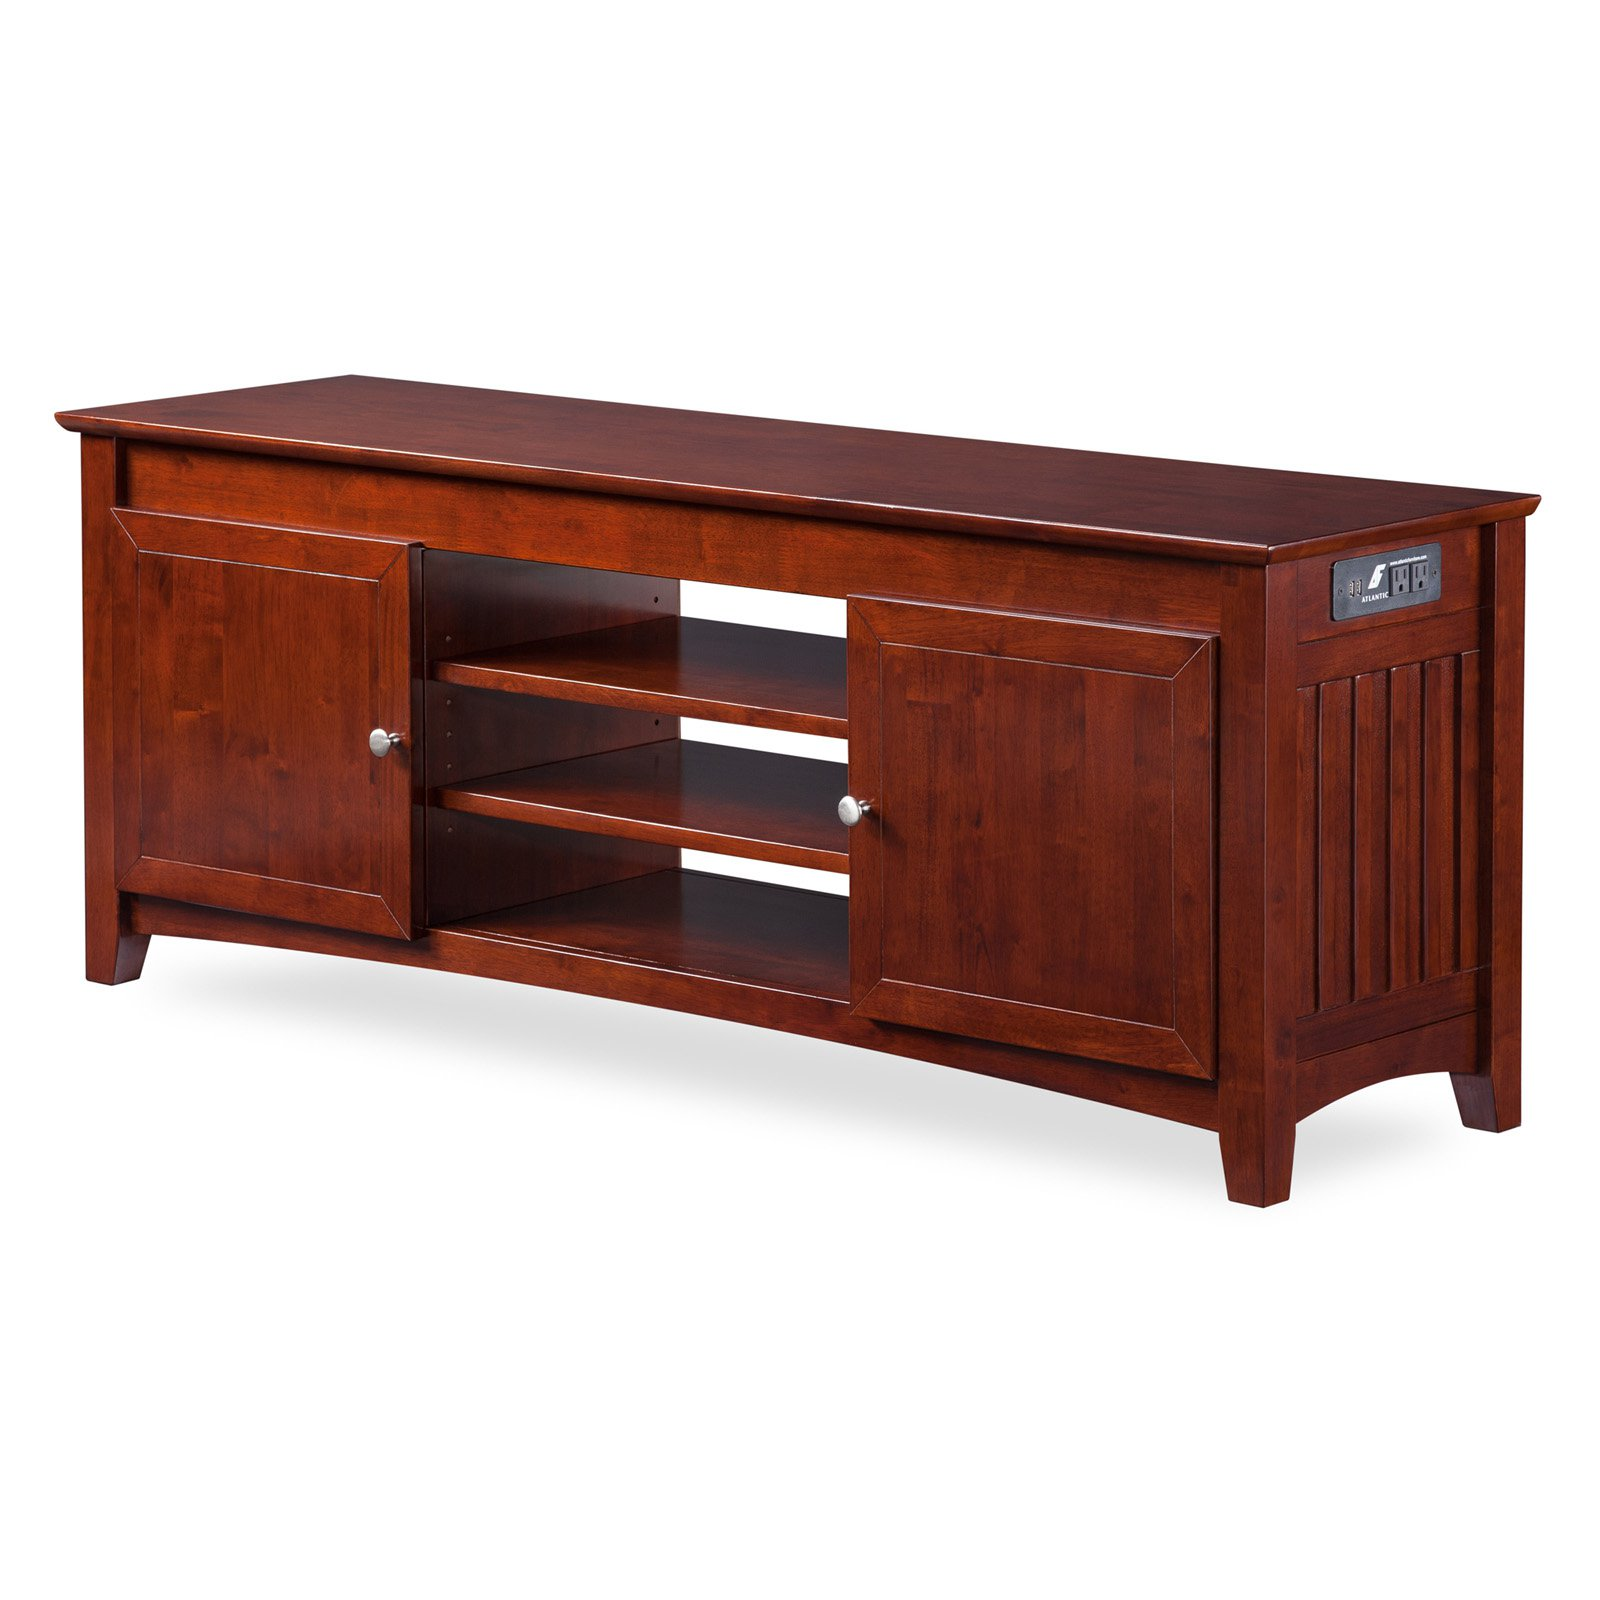 Mission TV Table 24x60 with Adjustable Shelves and Charging Station in Walnut